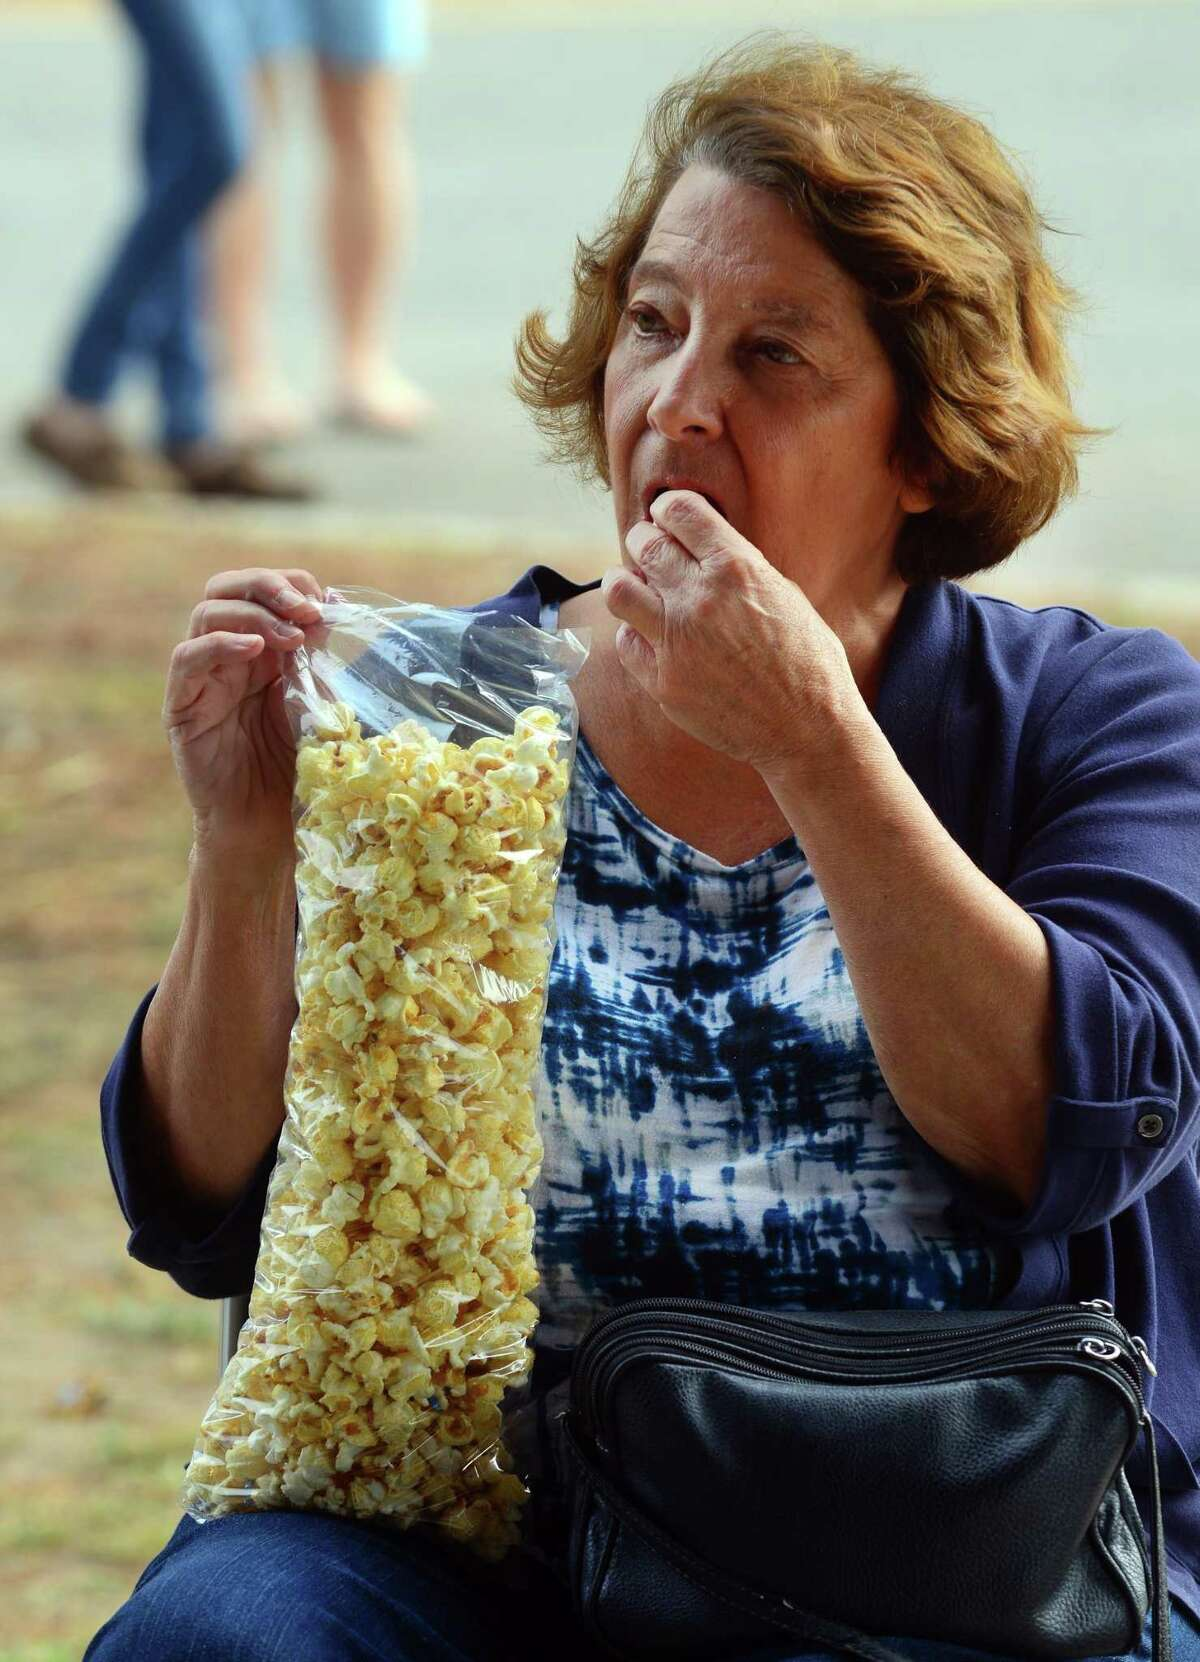 Carol Tiernan, of Milford, enjoys a bag of kettle corn during the Pumpkins on the Pier Festival at Walnut Beach in Milford, Conn., on Saturday Oct. 7, 2017. The festival included a pumpkin patch with over 3000 pumpkins, games and rides for the kids, pumpkin carving and decorating, food trucks, craft vendors, and of course the beautifully decorated pier.